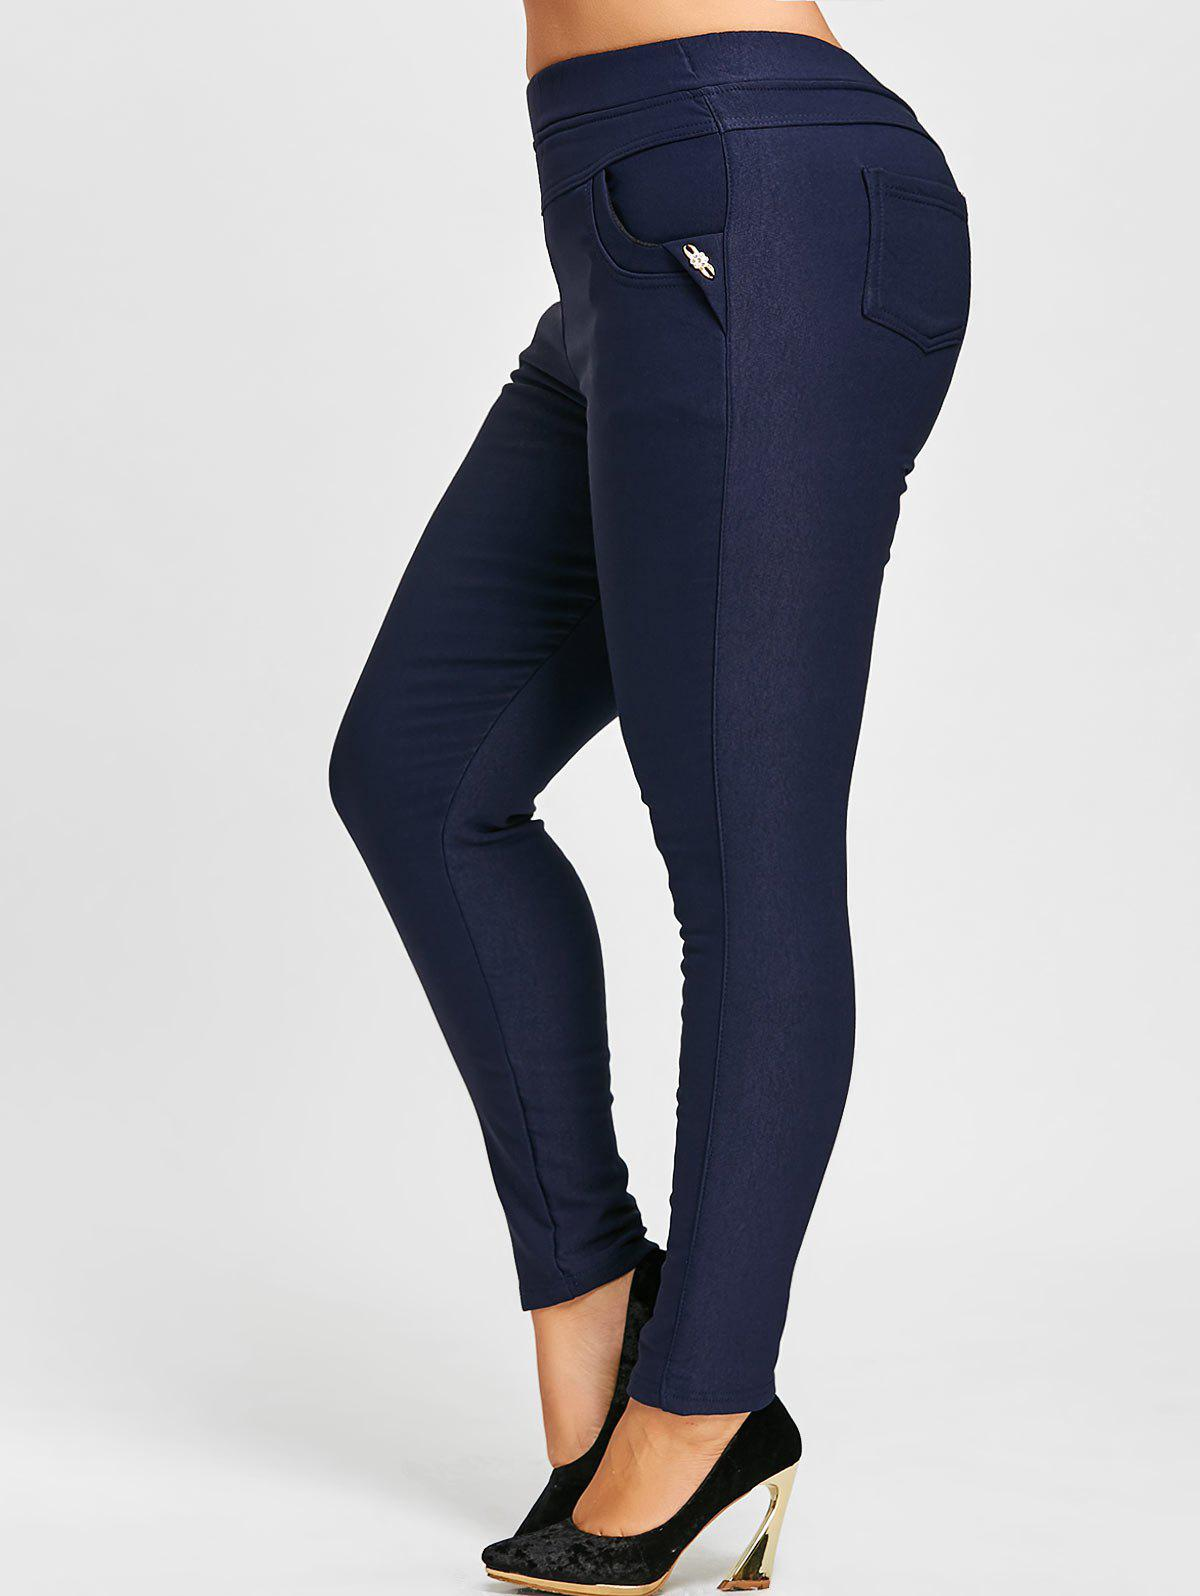 Elastic Waist Plus Size Fleece Lined Ponte PantsWOMEN<br><br>Size: 5XL; Color: PURPLISH BLUE; Style: Fashion; Length: Ninth; Material: Polyester; Fit Type: Skinny; Waist Type: High; Closure Type: Elastic Waist; Pattern Type: Solid; Pant Style: Pencil Pants; Elasticity: Elastic; Weight: 0.6500kg; Package Contents: 1 x Pants;